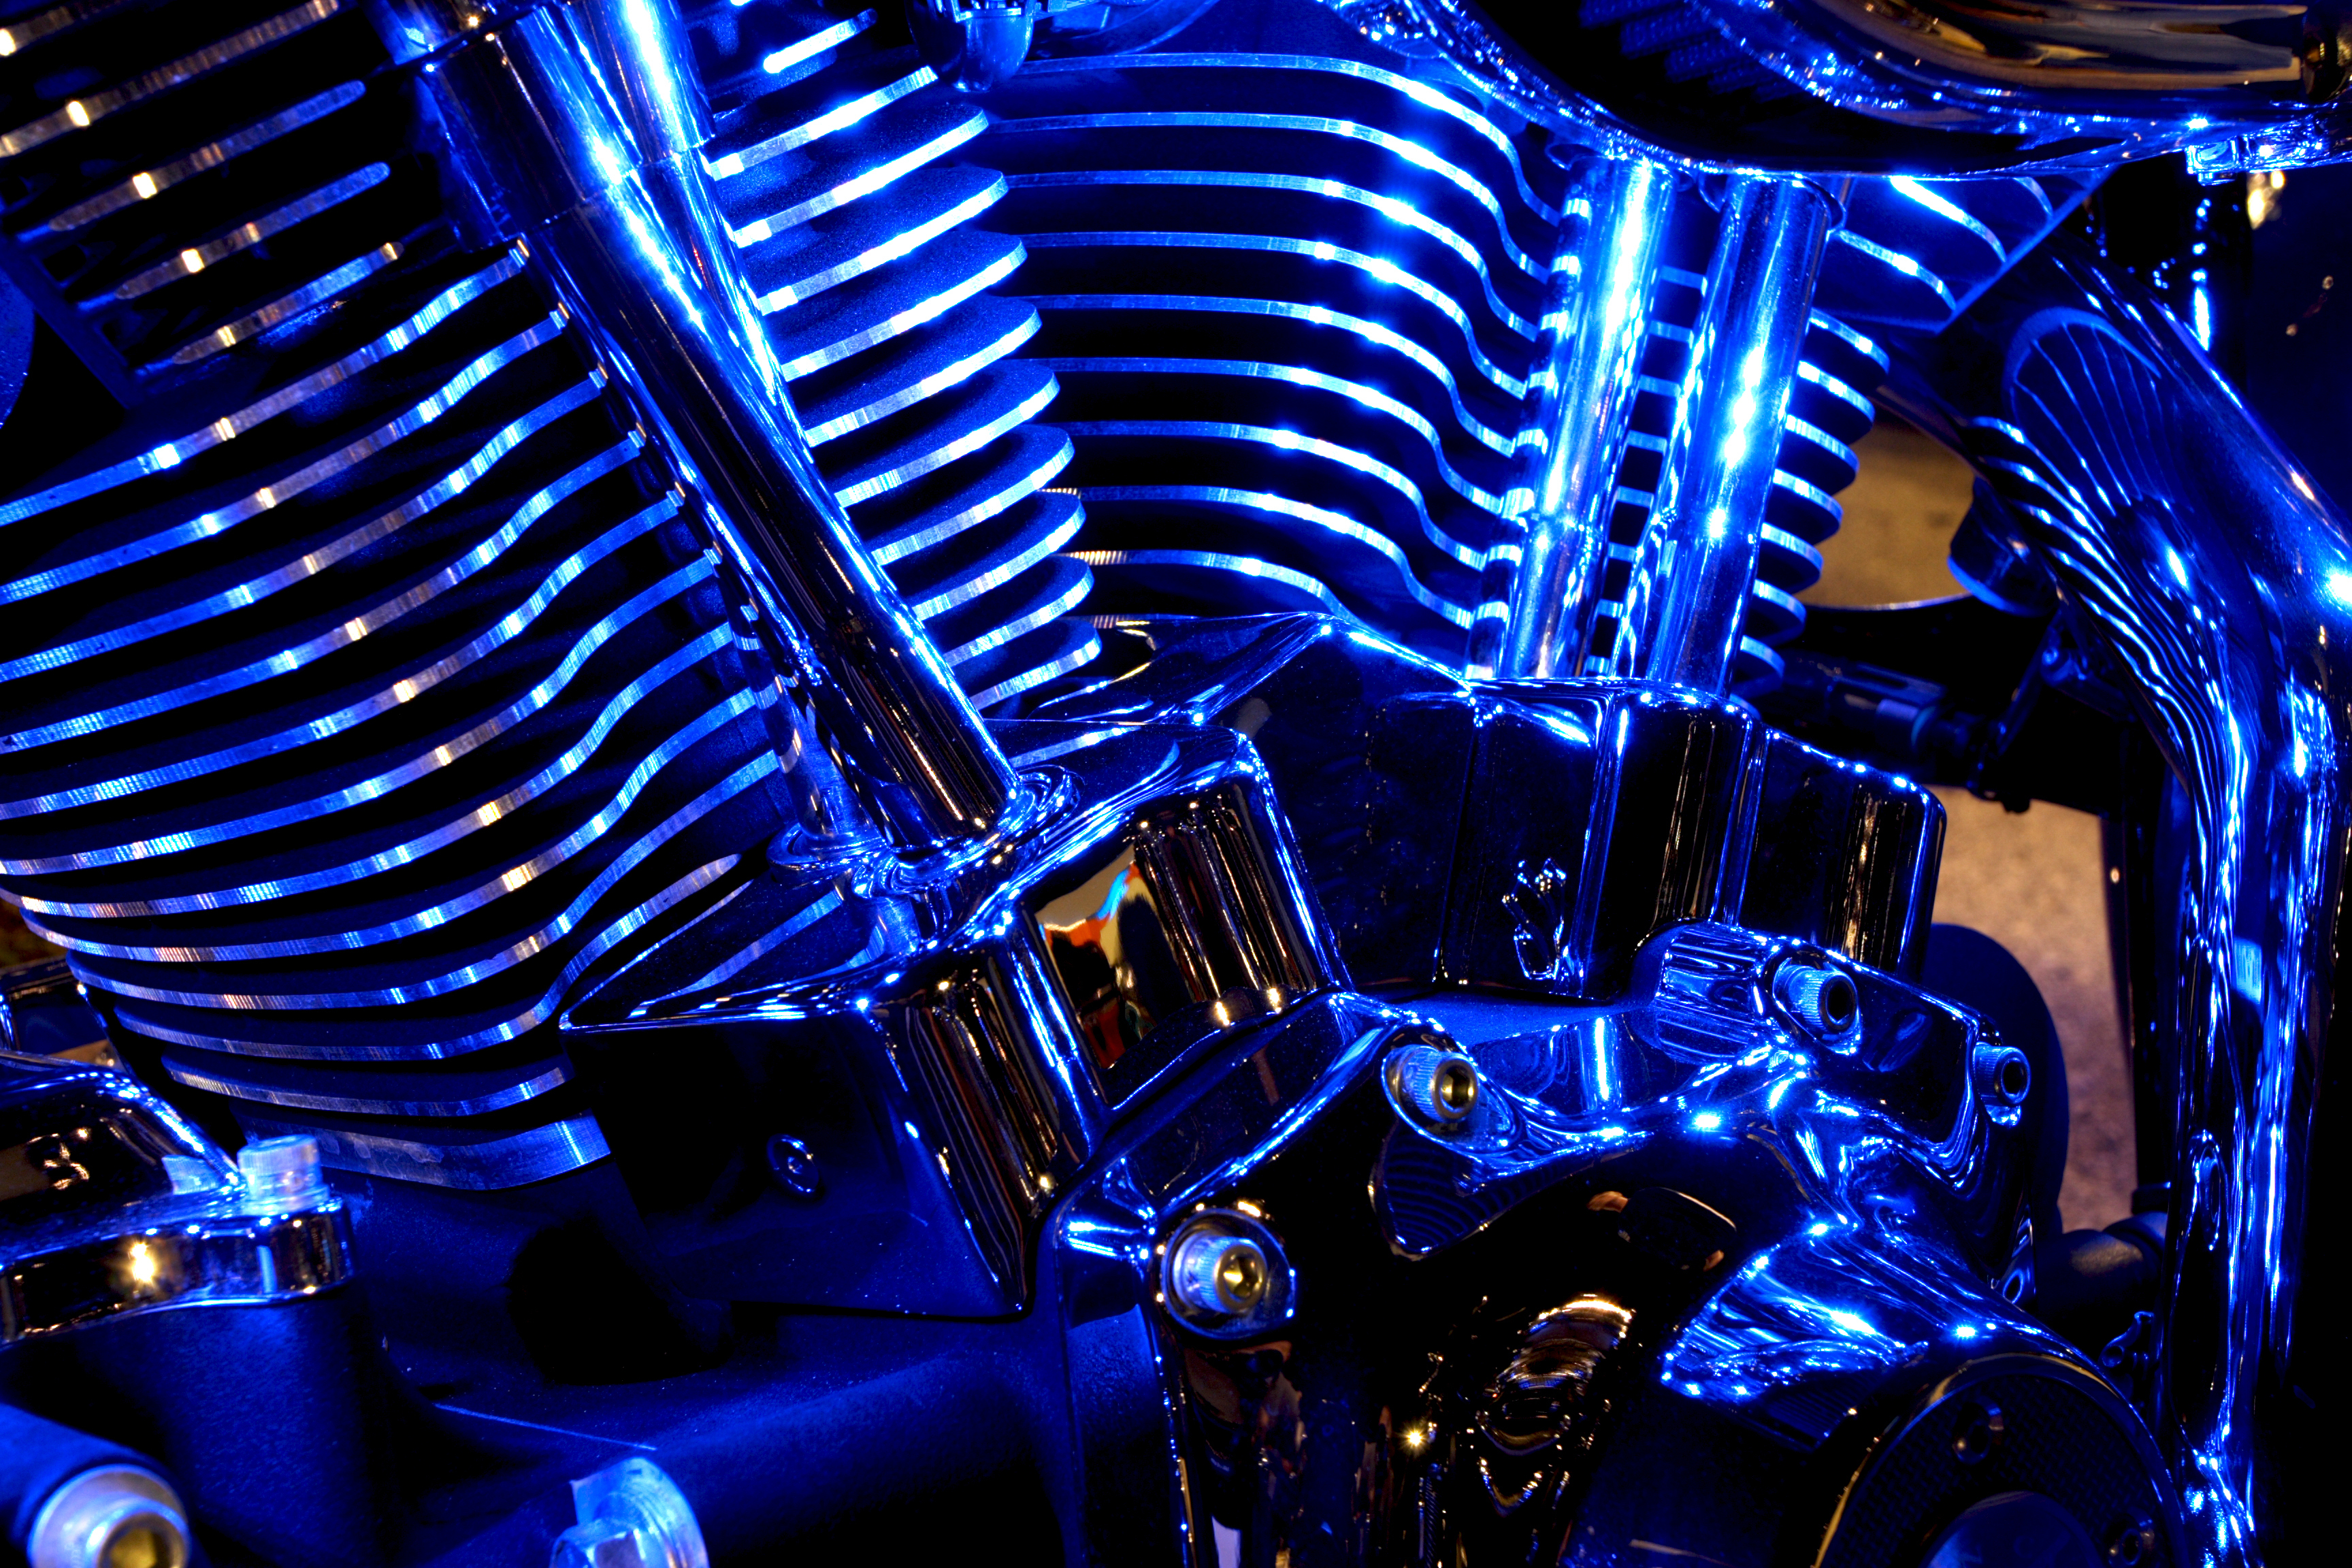 Texas Law Clears Up Confusion Over LED Lights on Motorcycles